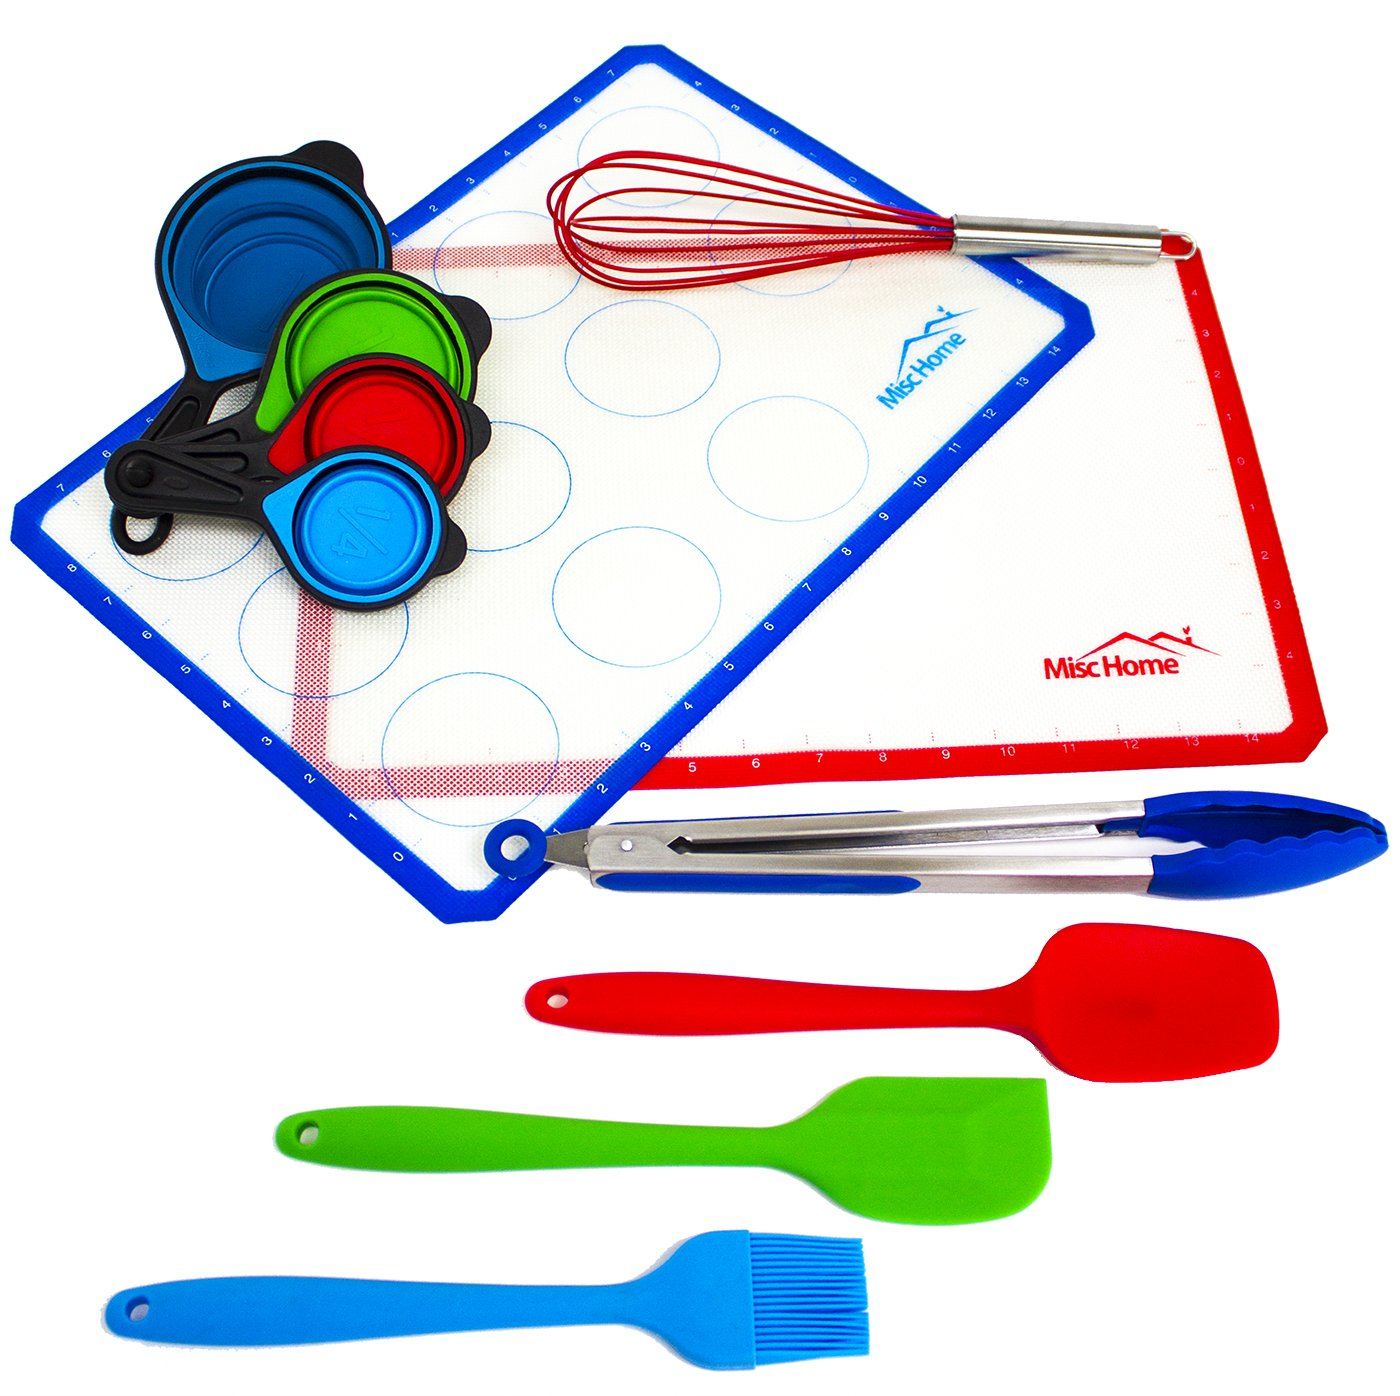 [11 Piece Set] Silicone Baking Mat Set with 2 Large Baking Sheets, Spatula, Brush, Whisk Measuring Cups, and Tongs All BPA-Free